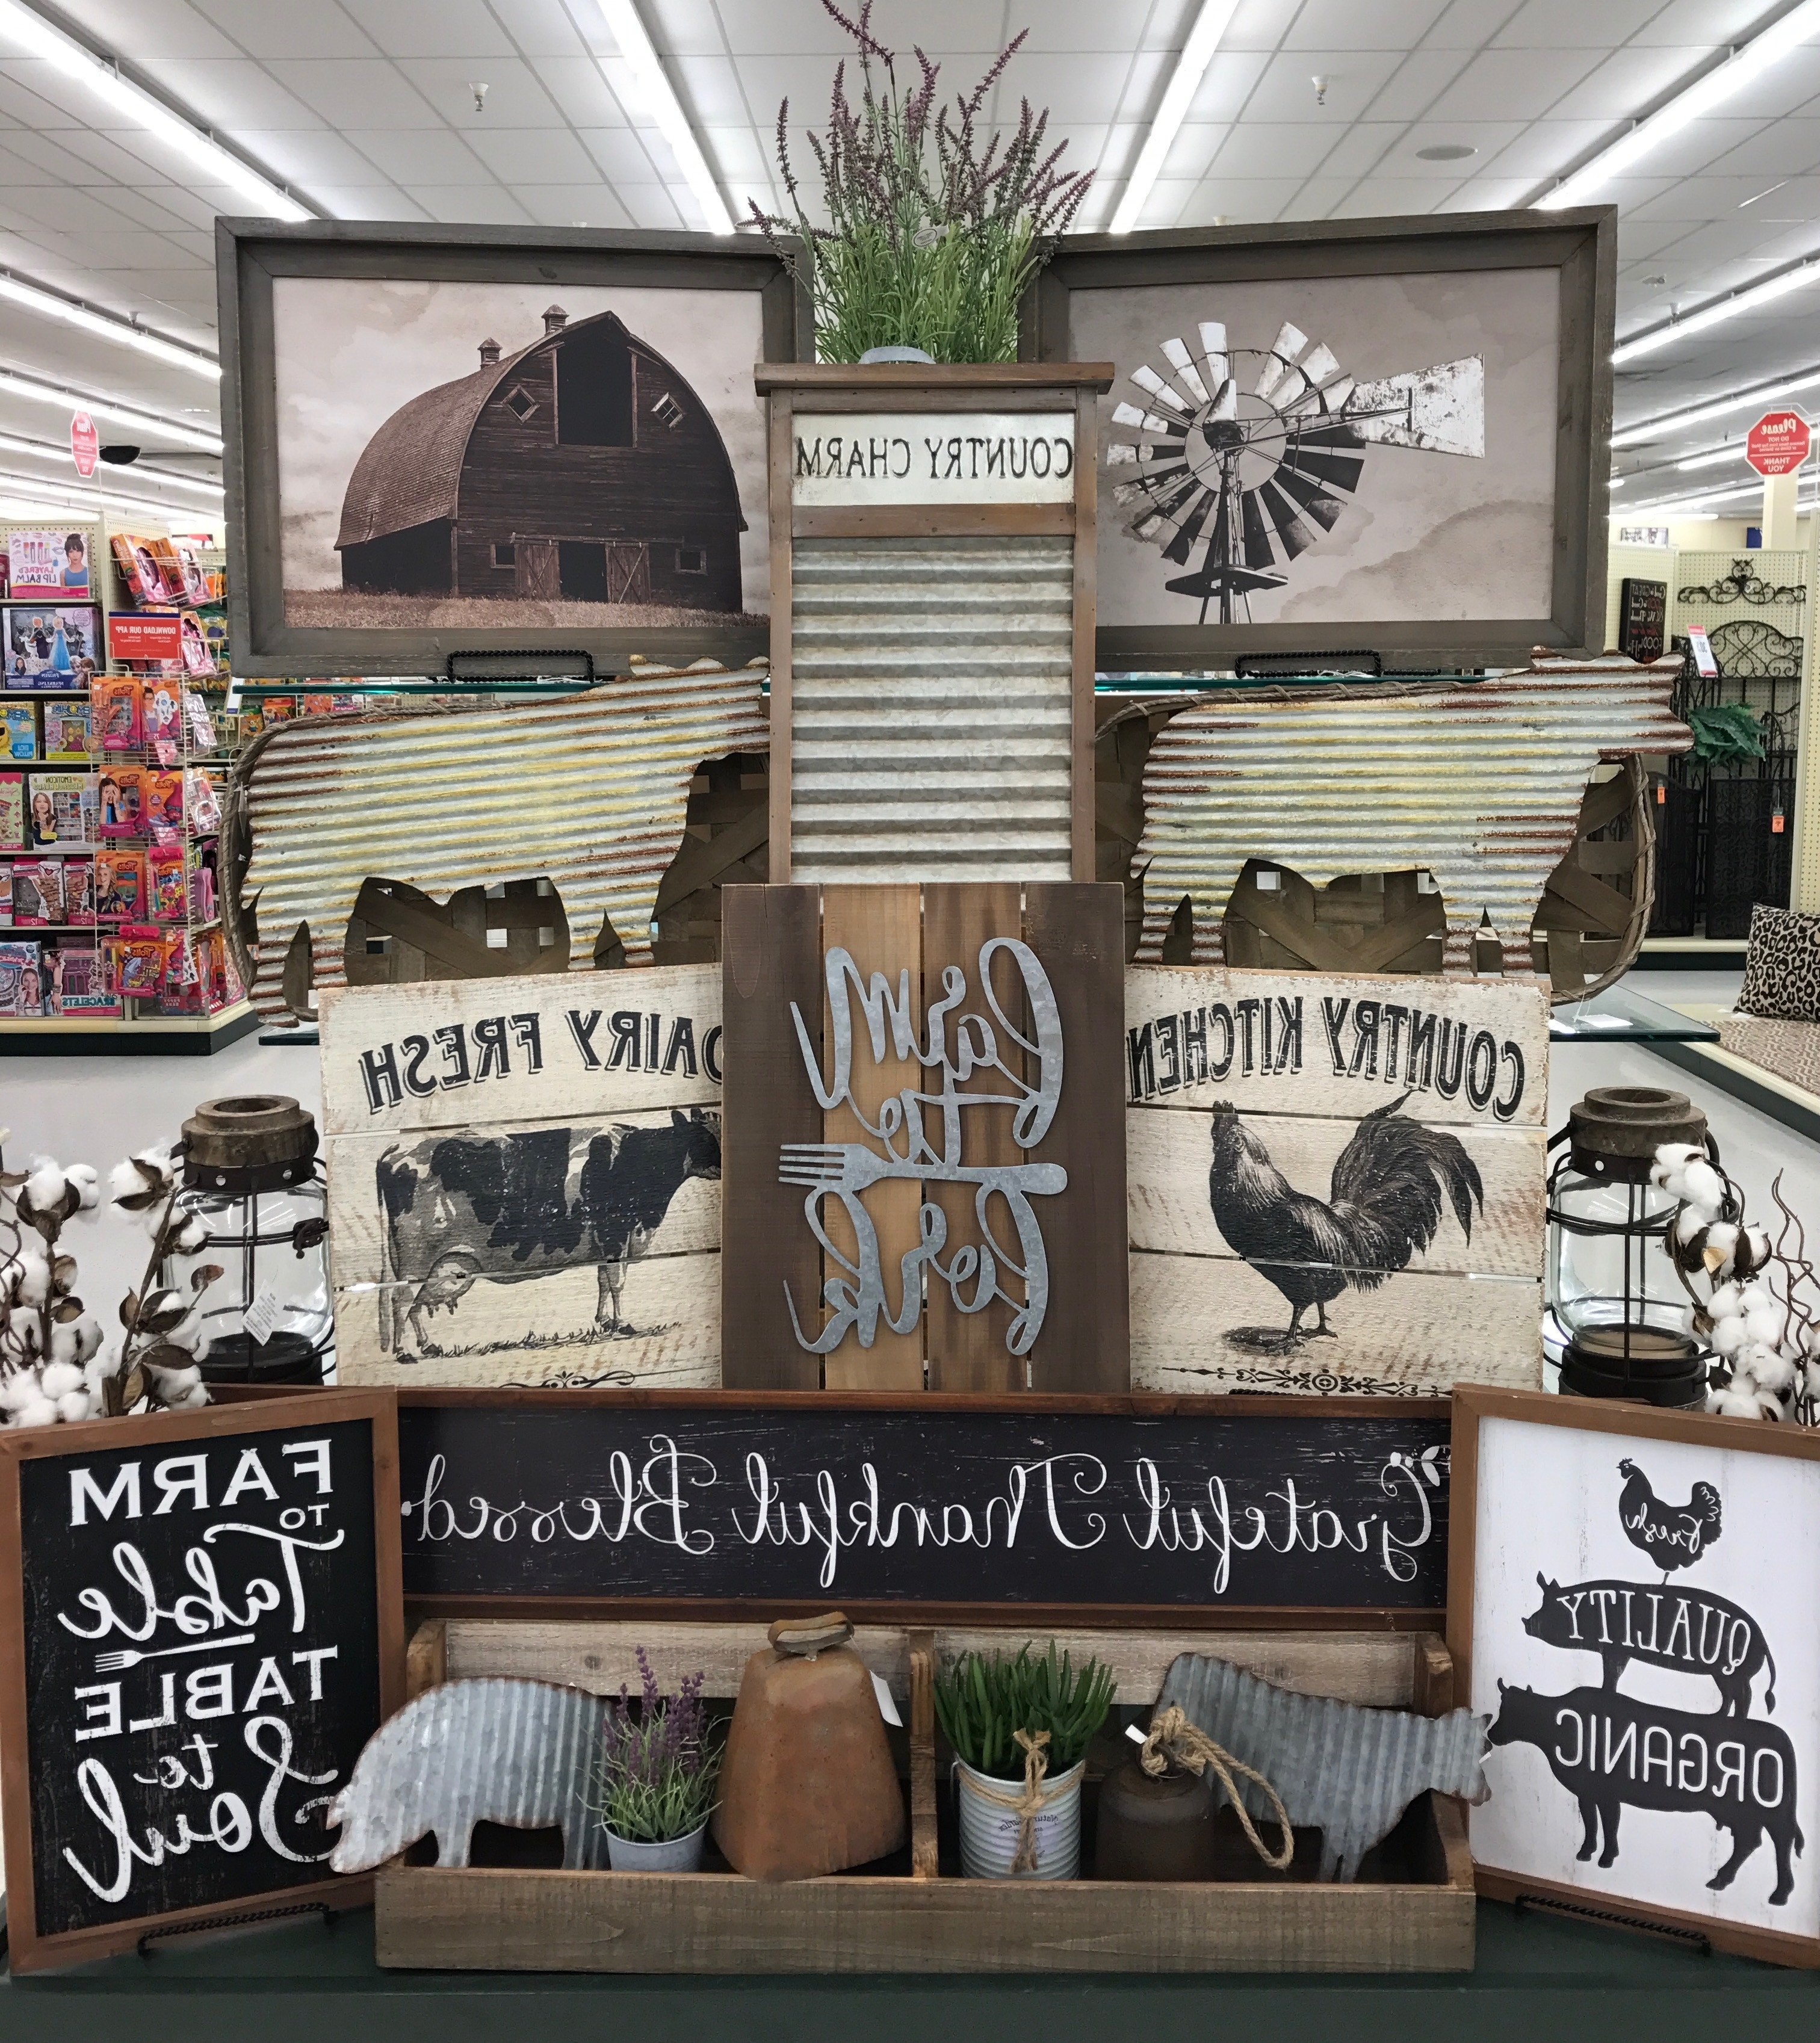 Awesome Wall Decor Hobby Lobby Scheme Of Hobby Lobby Canvas Wall Art Within 2018 Hobby Lobby Wall Art (View 3 of 15)